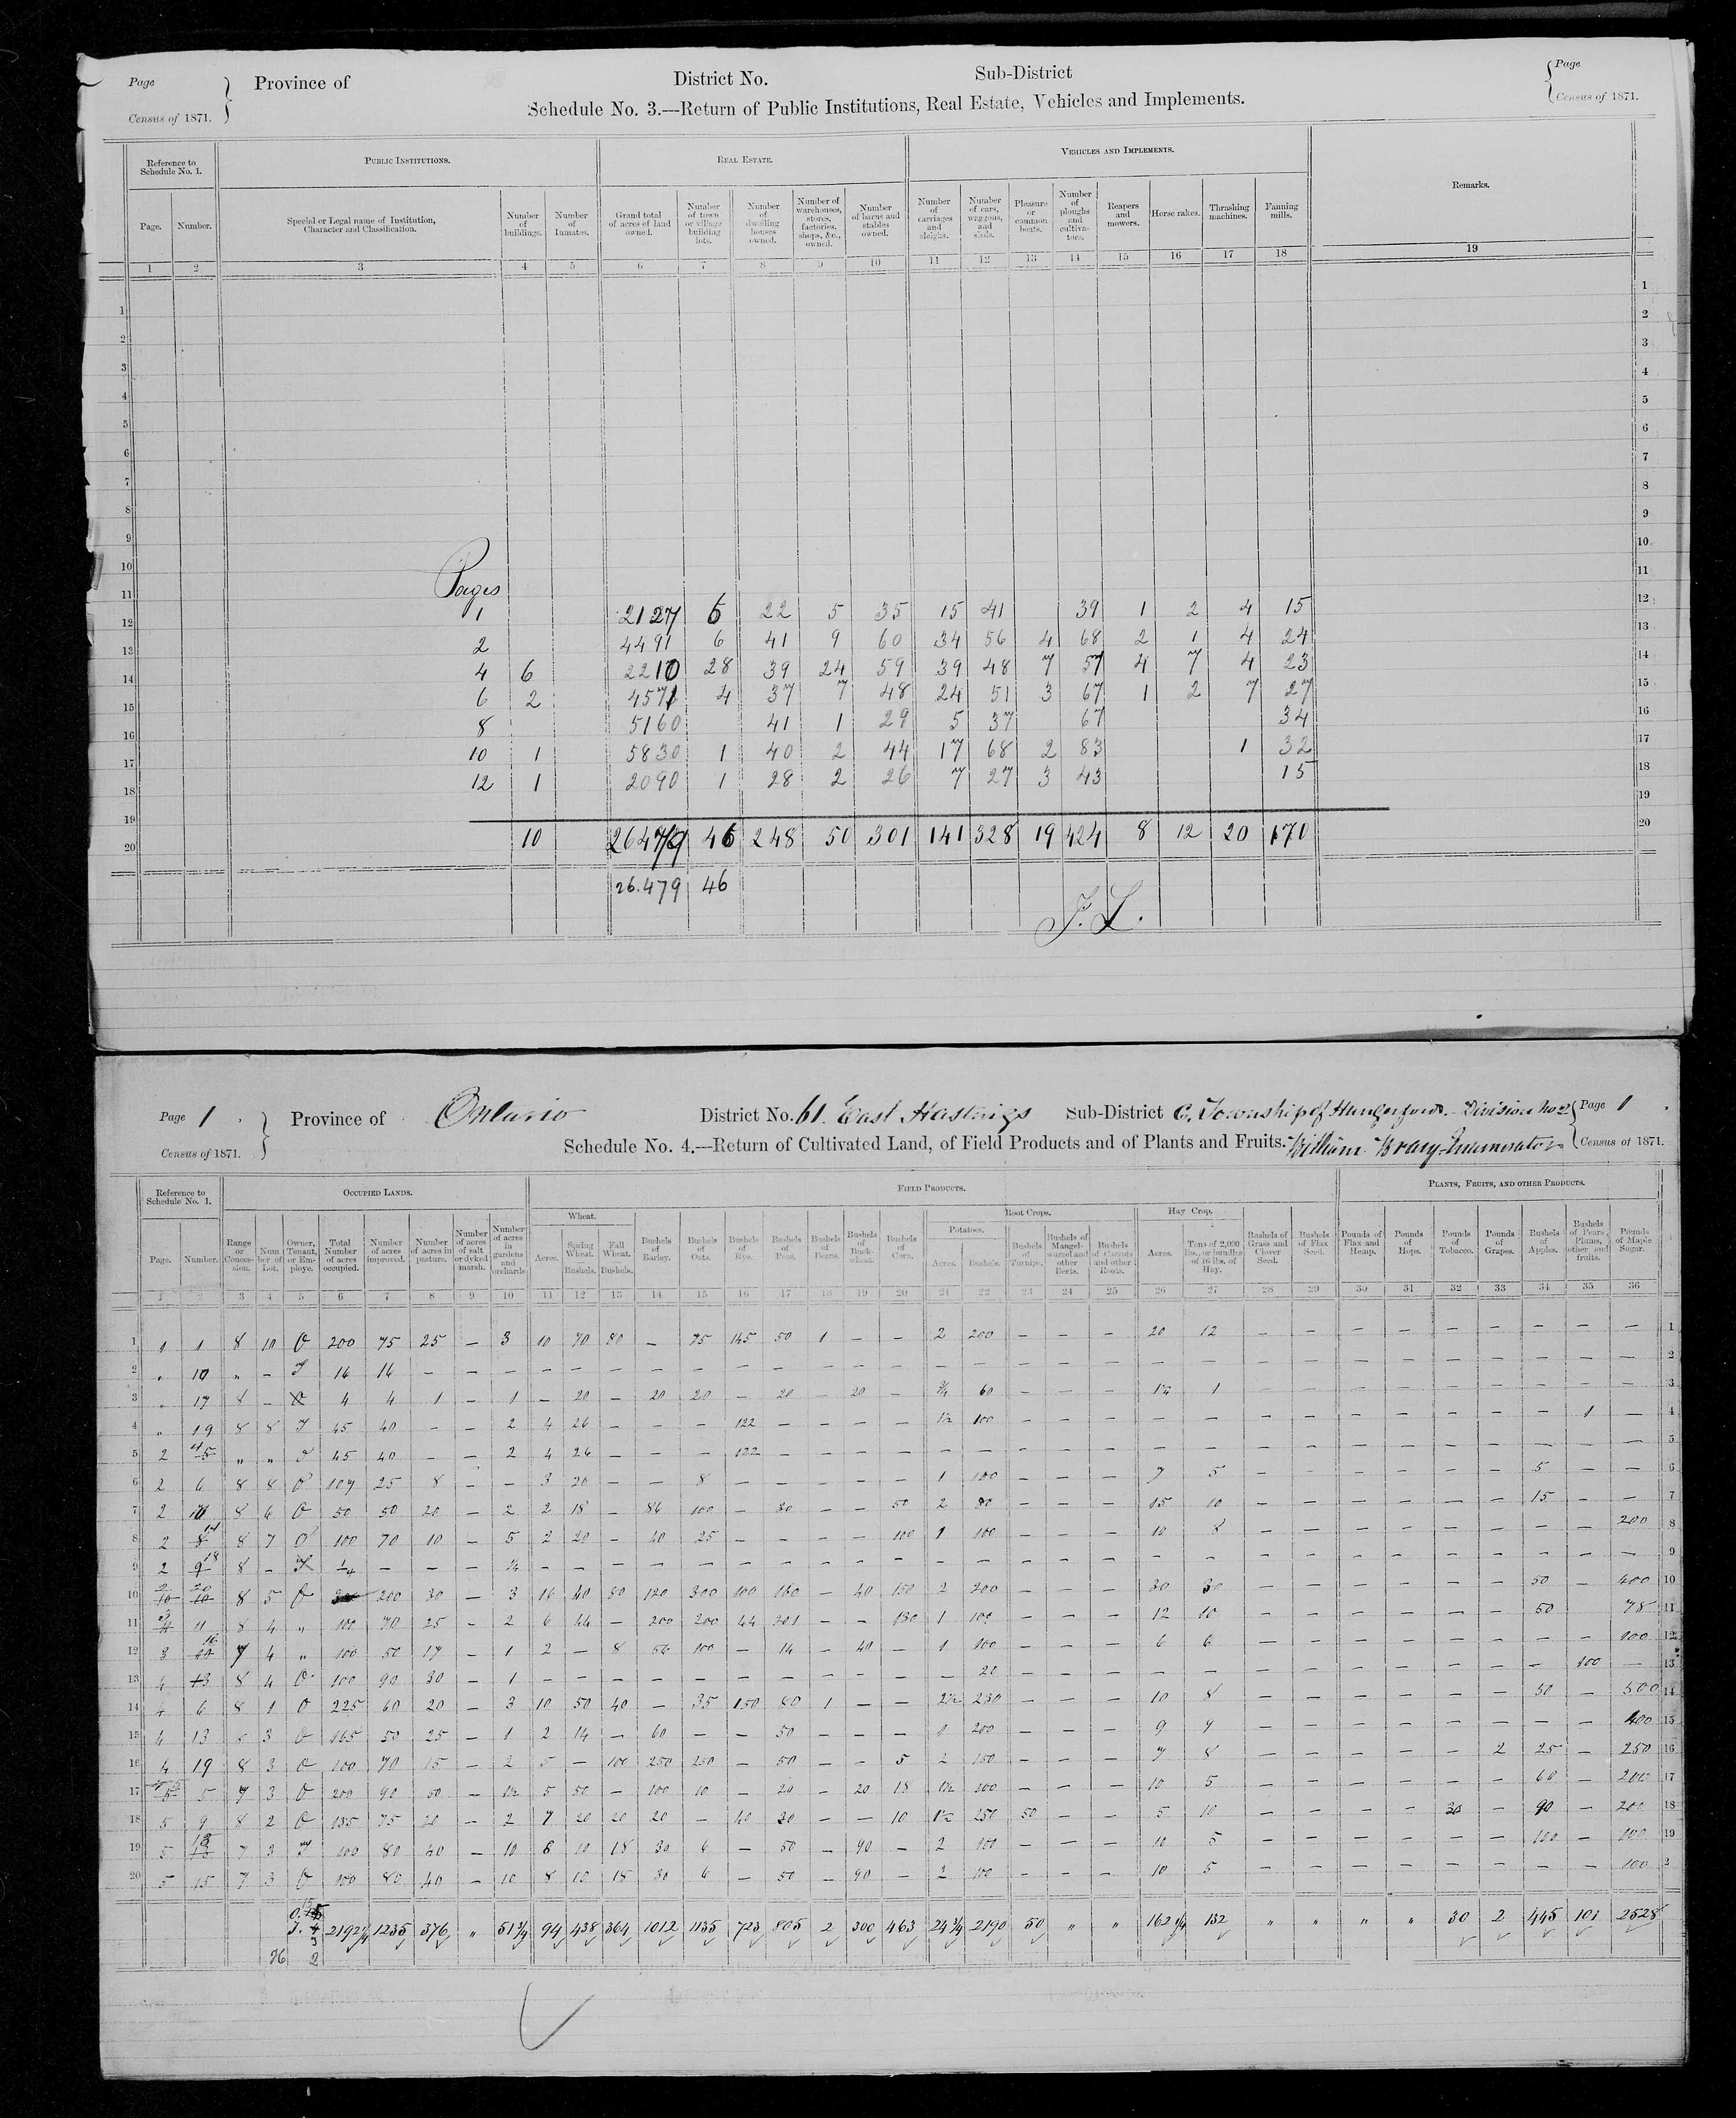 Title: Census of Canada, 1871 - Mikan Number: 142105 - Microform: c-9993